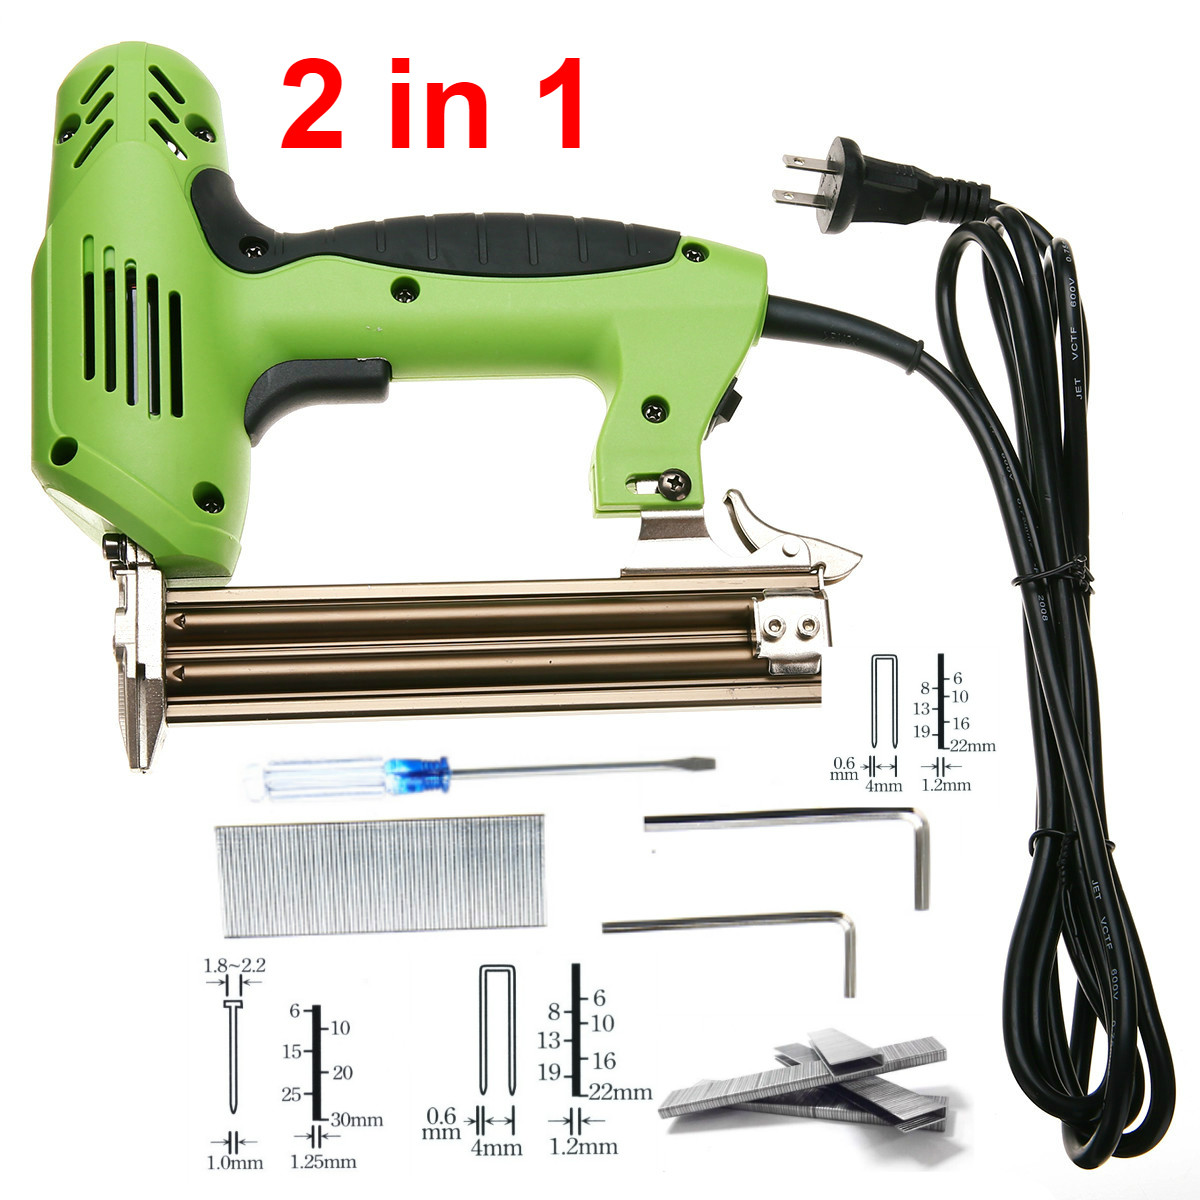 1800W Electric Stapler Gun 2 In 1 Framing Tacker Eletric Nails Staple Gun 220V Electric Power Tools U-Shaped Straight Nail Gun